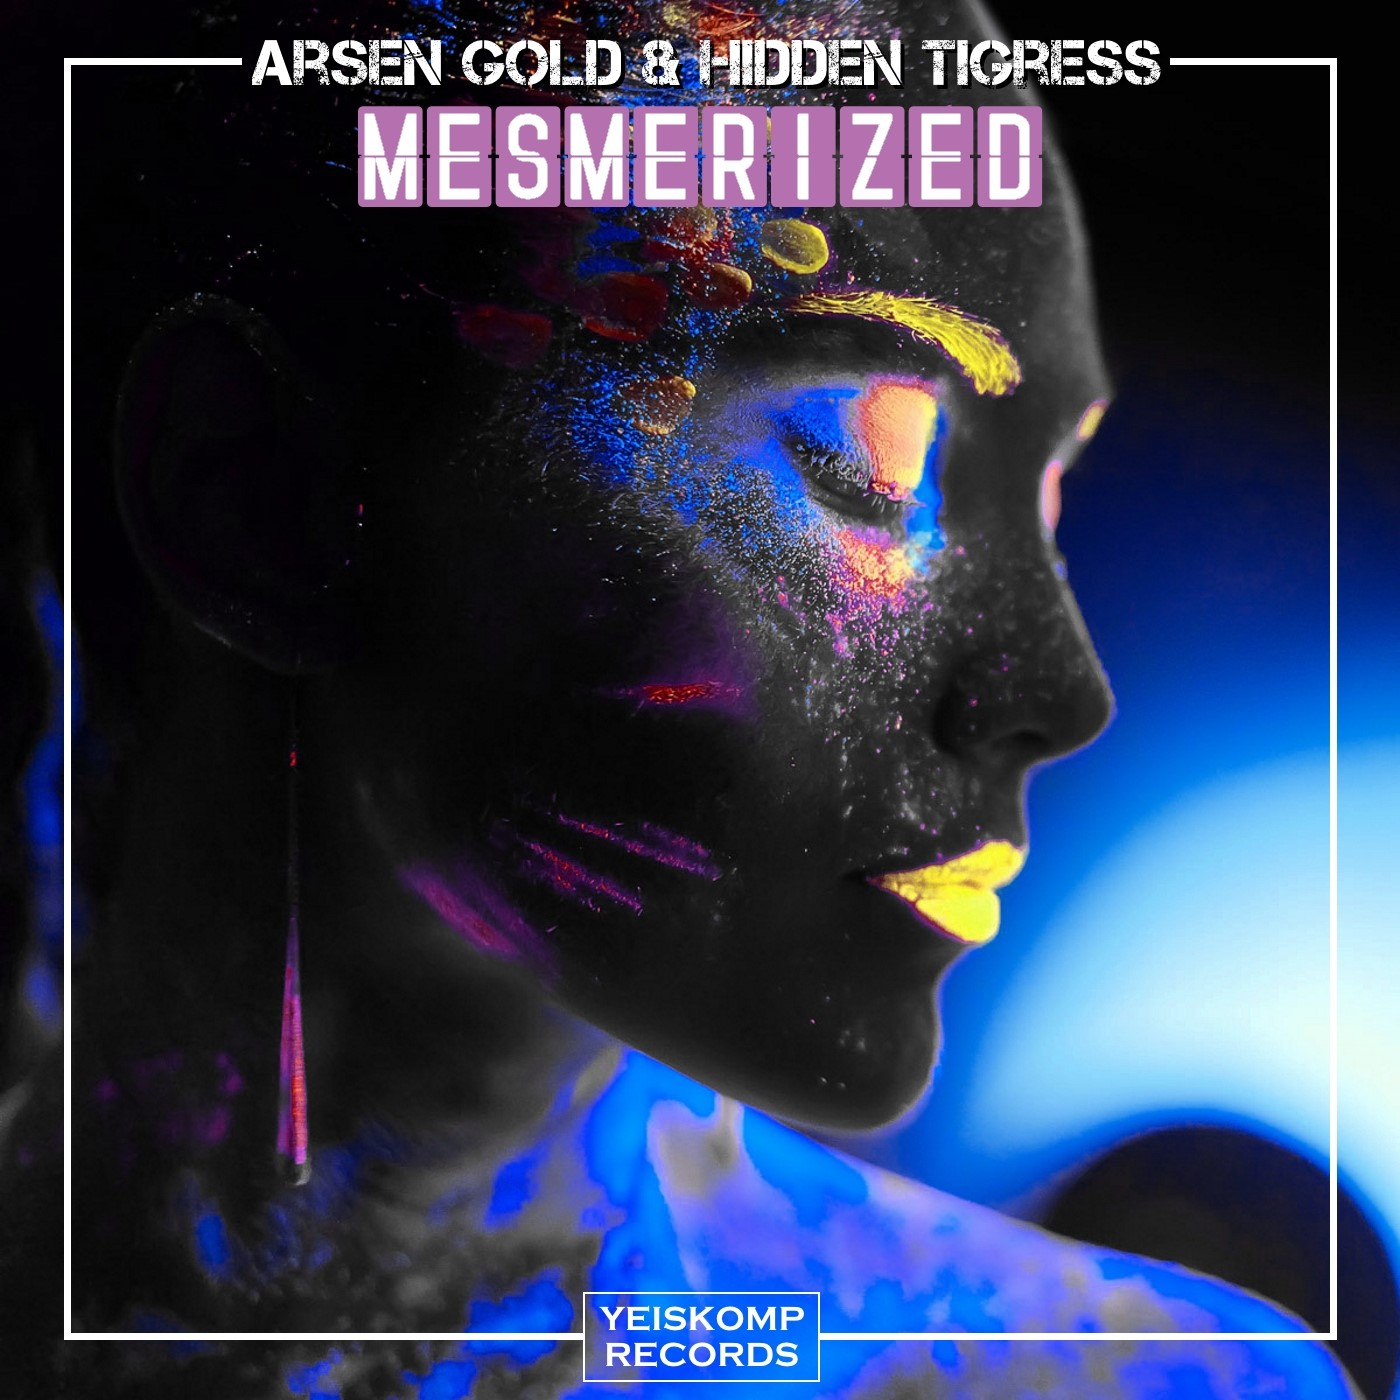 Arsen Gold & Hidden Tigress - Mesmerized (Original Mix)